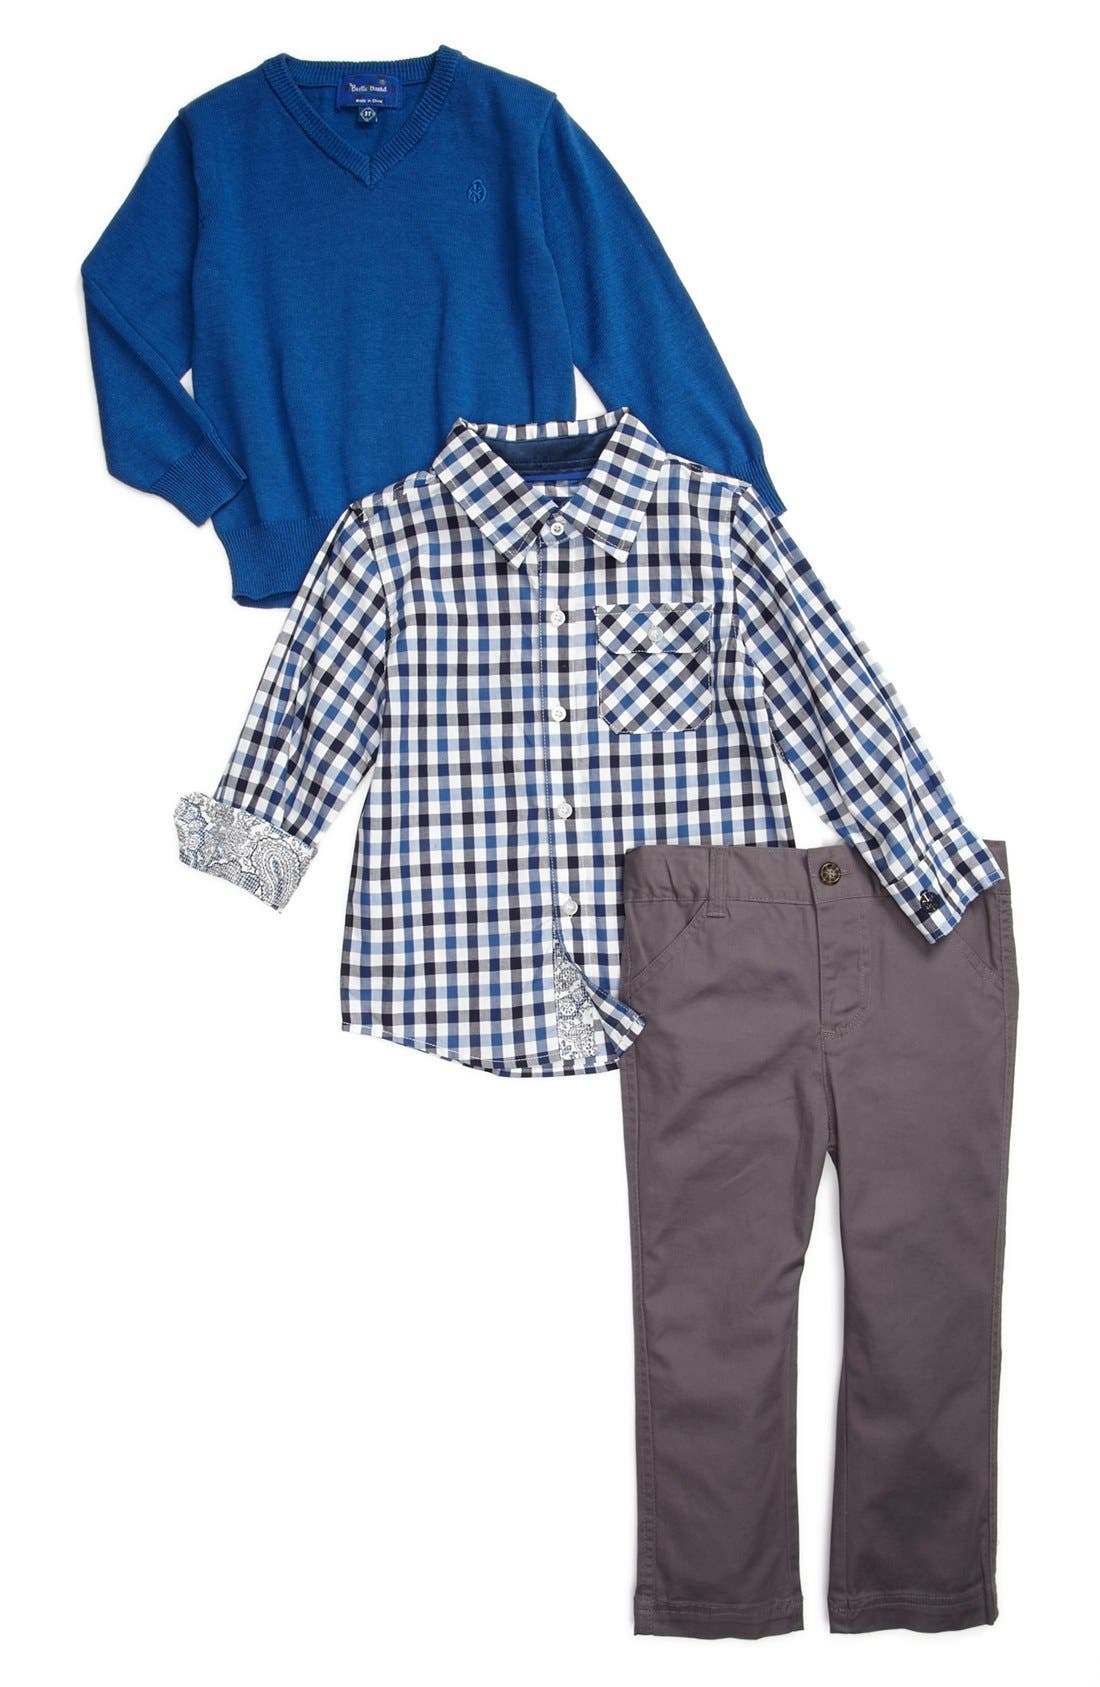 Main Image - Beetle & Thread Sweater, Sport Shirt & Pants (Toddler Boys)